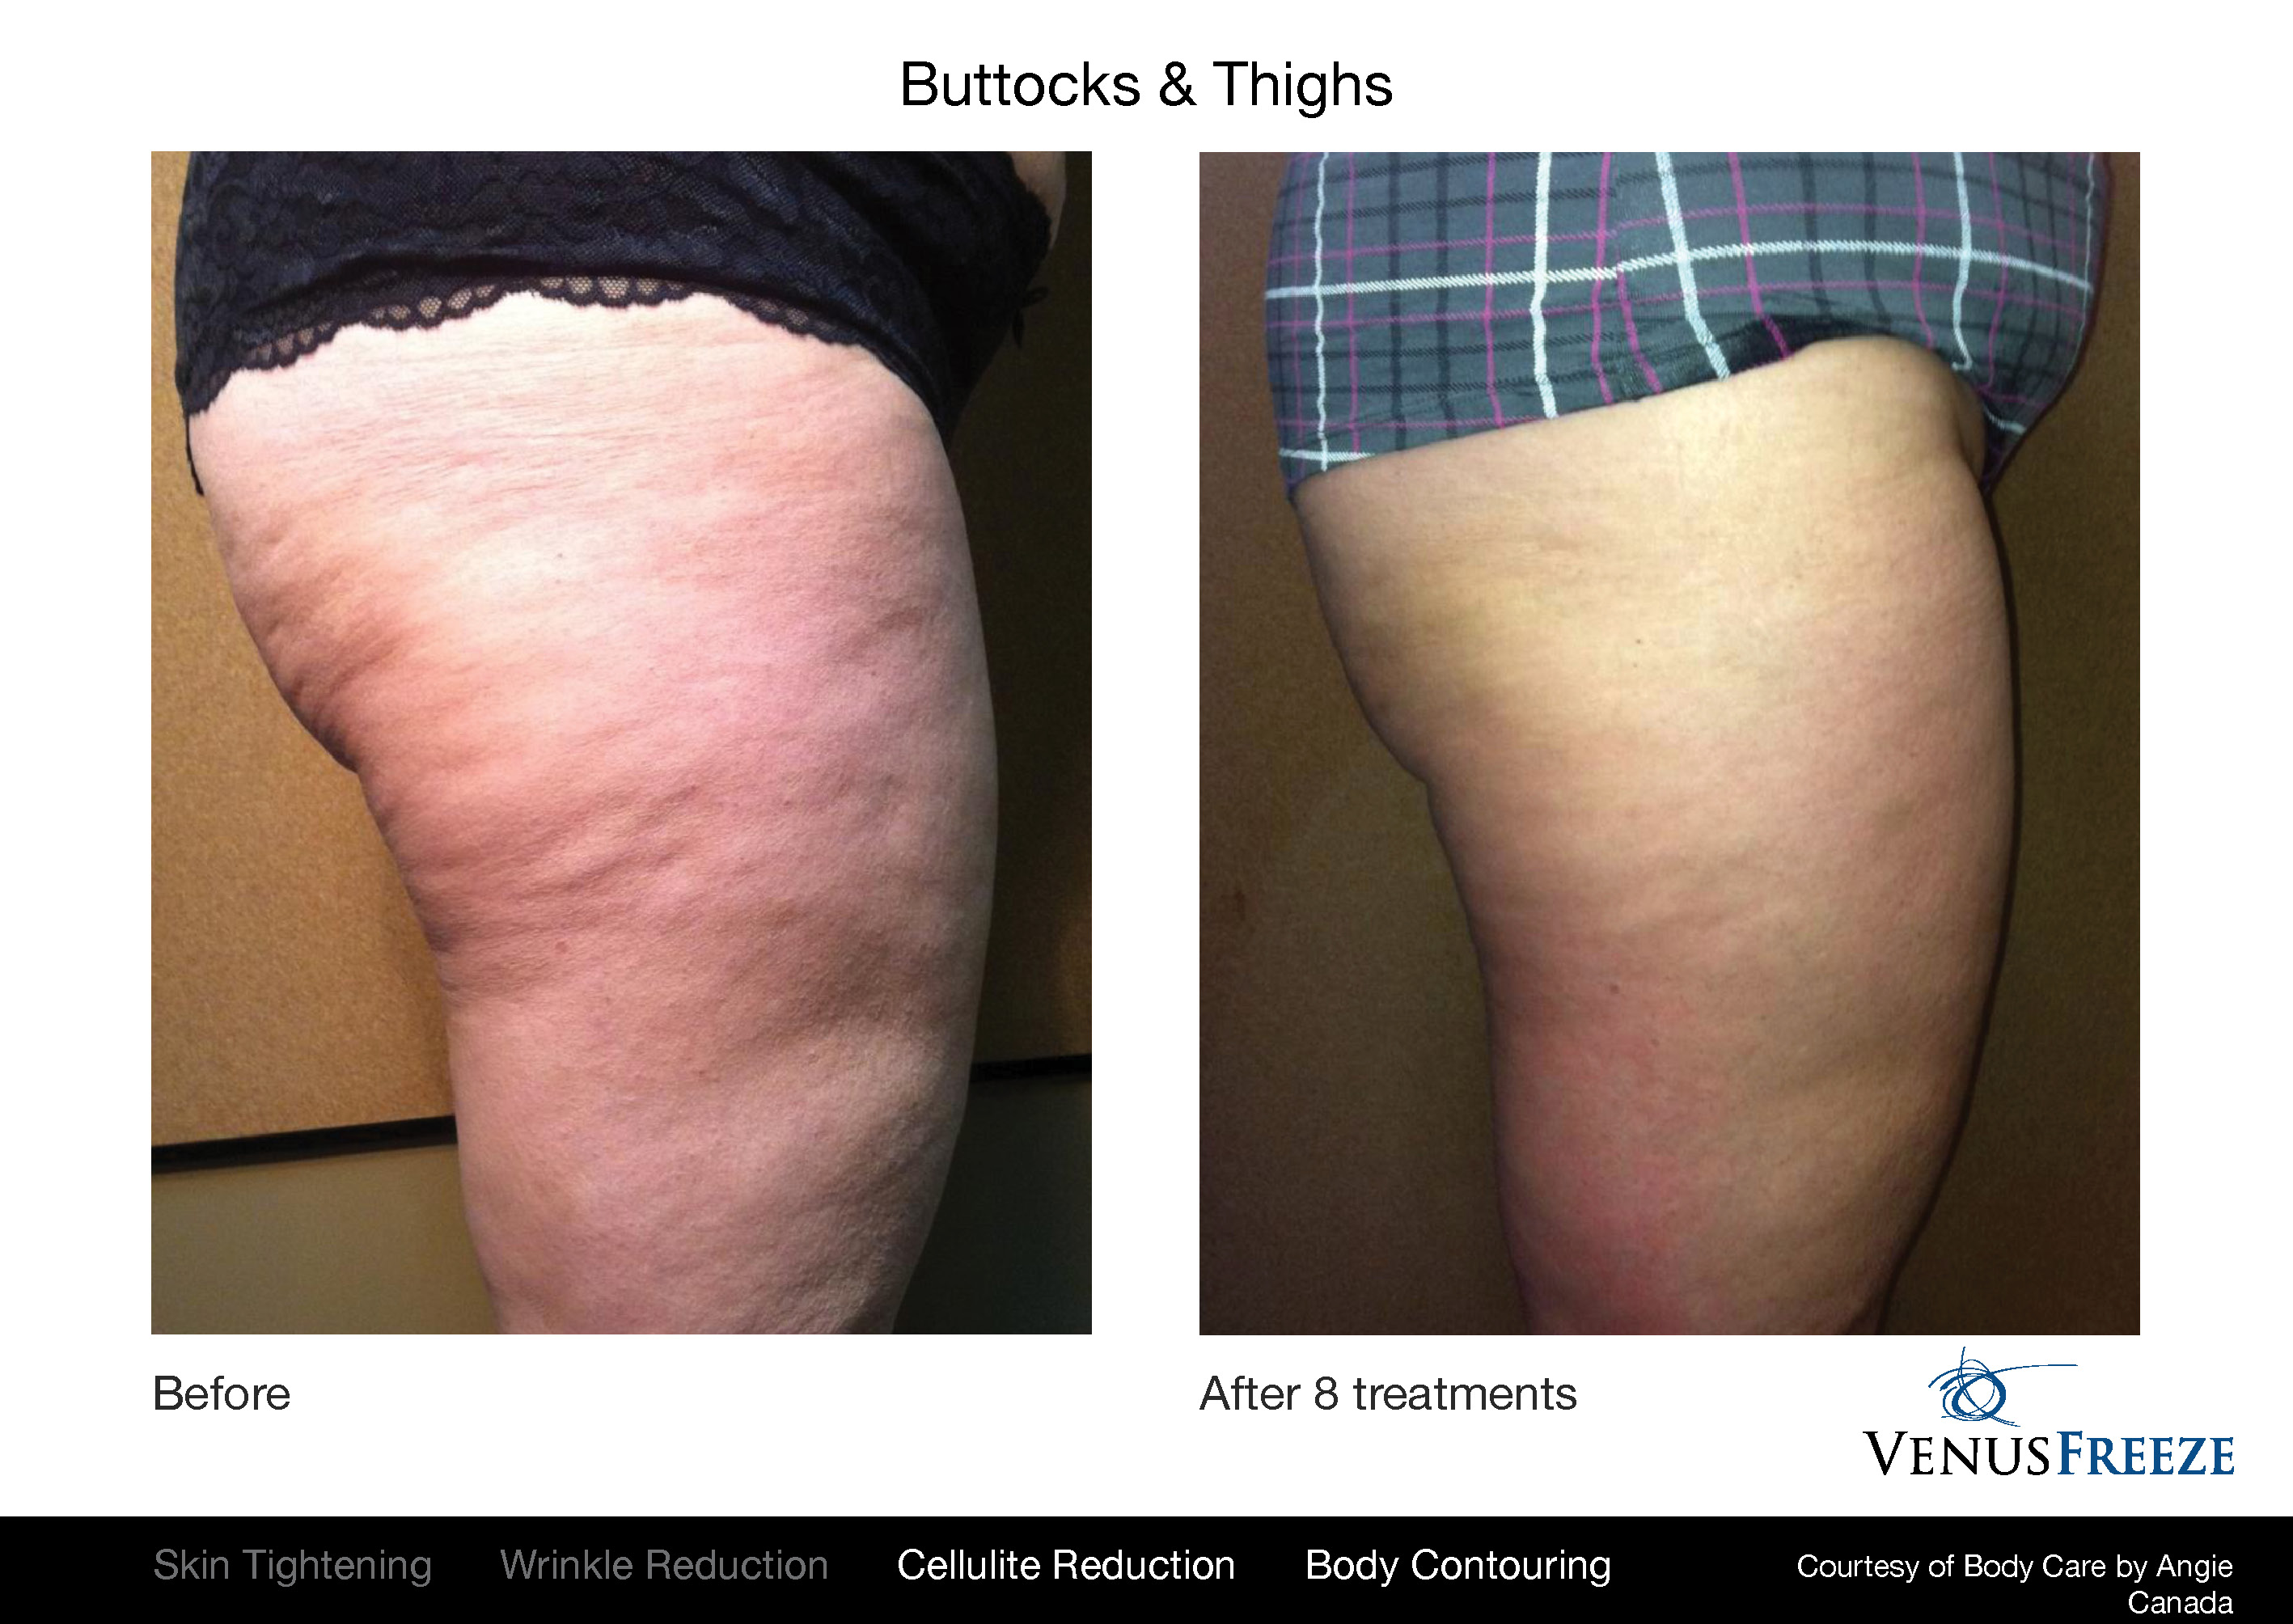 Body Contouring Austin |Venus Freeze Before & After | Cellulite Reduction Thighs